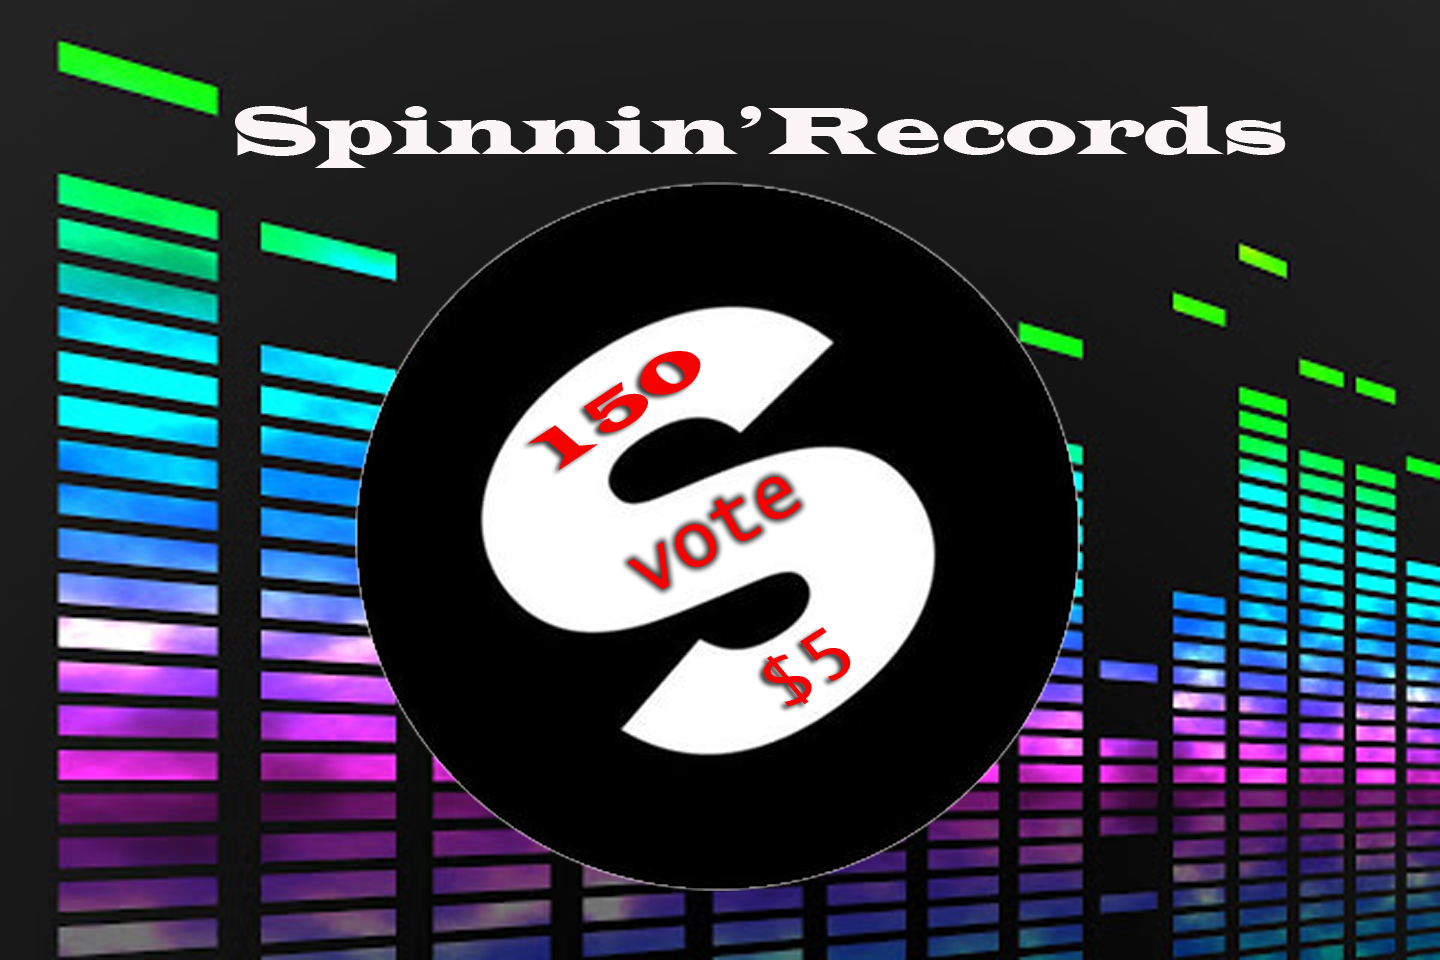 Get You 150 Spinnin records talent pool votes for your contest